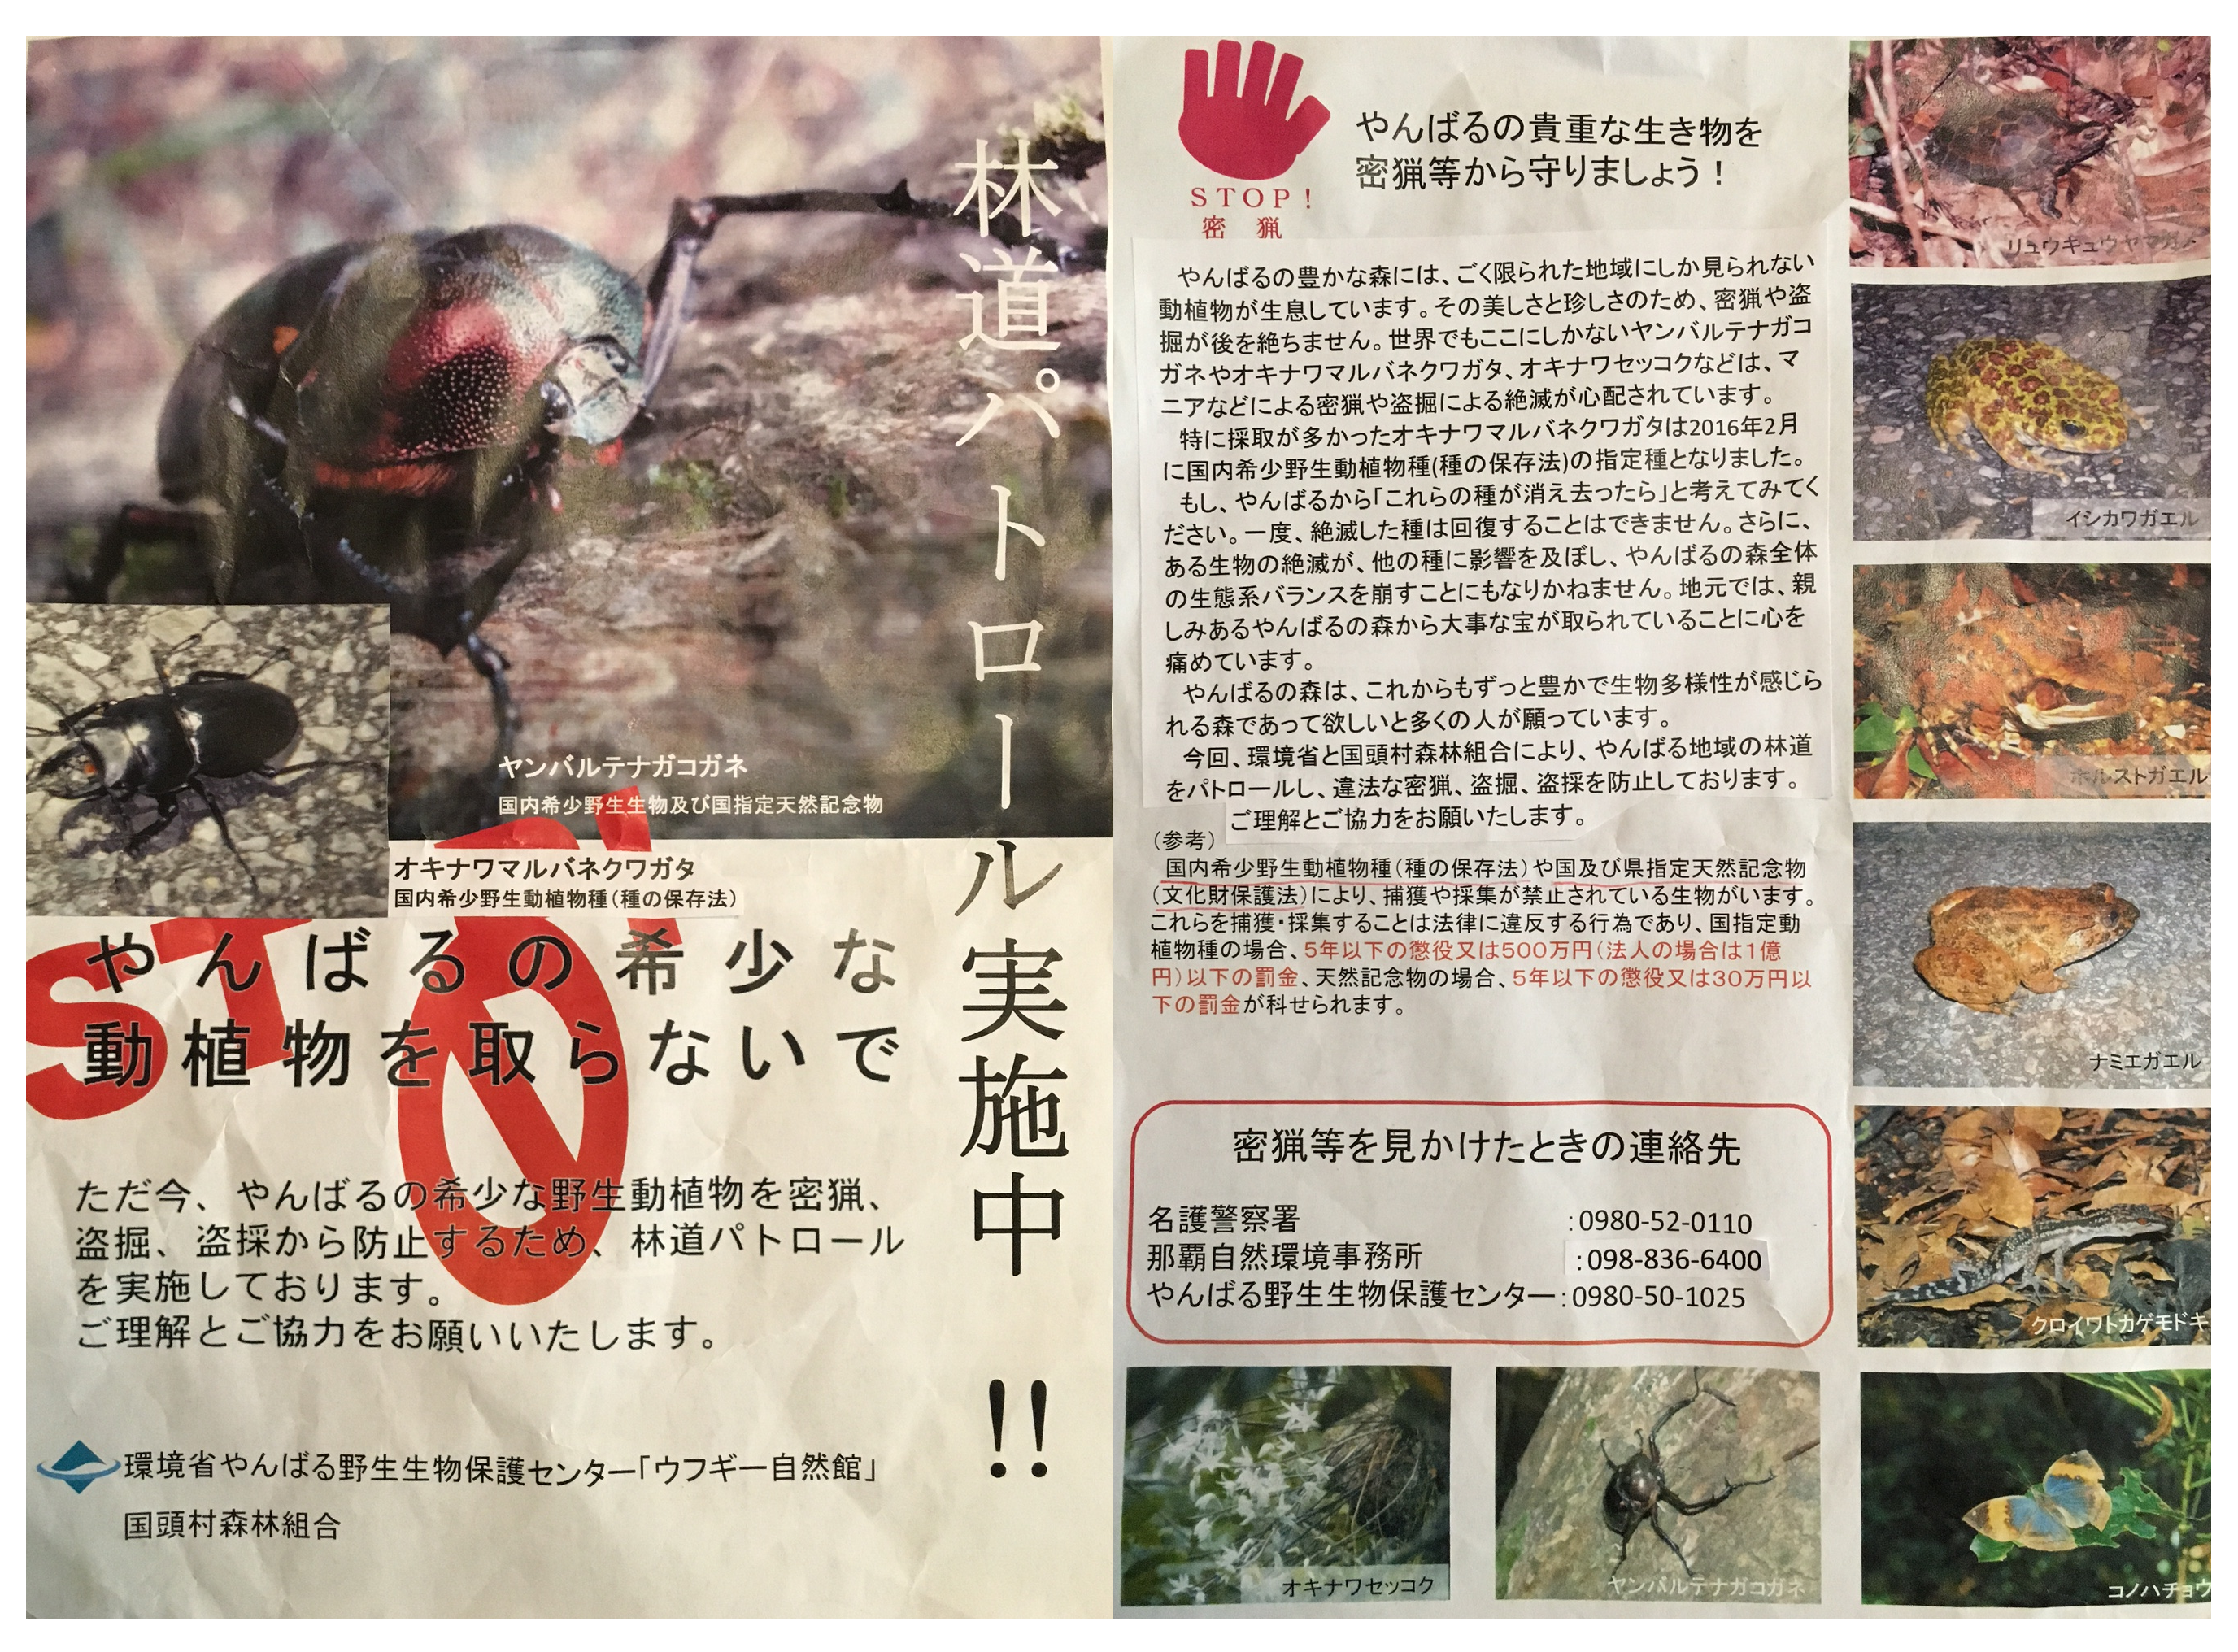 Poaching flyer - Yanbaru